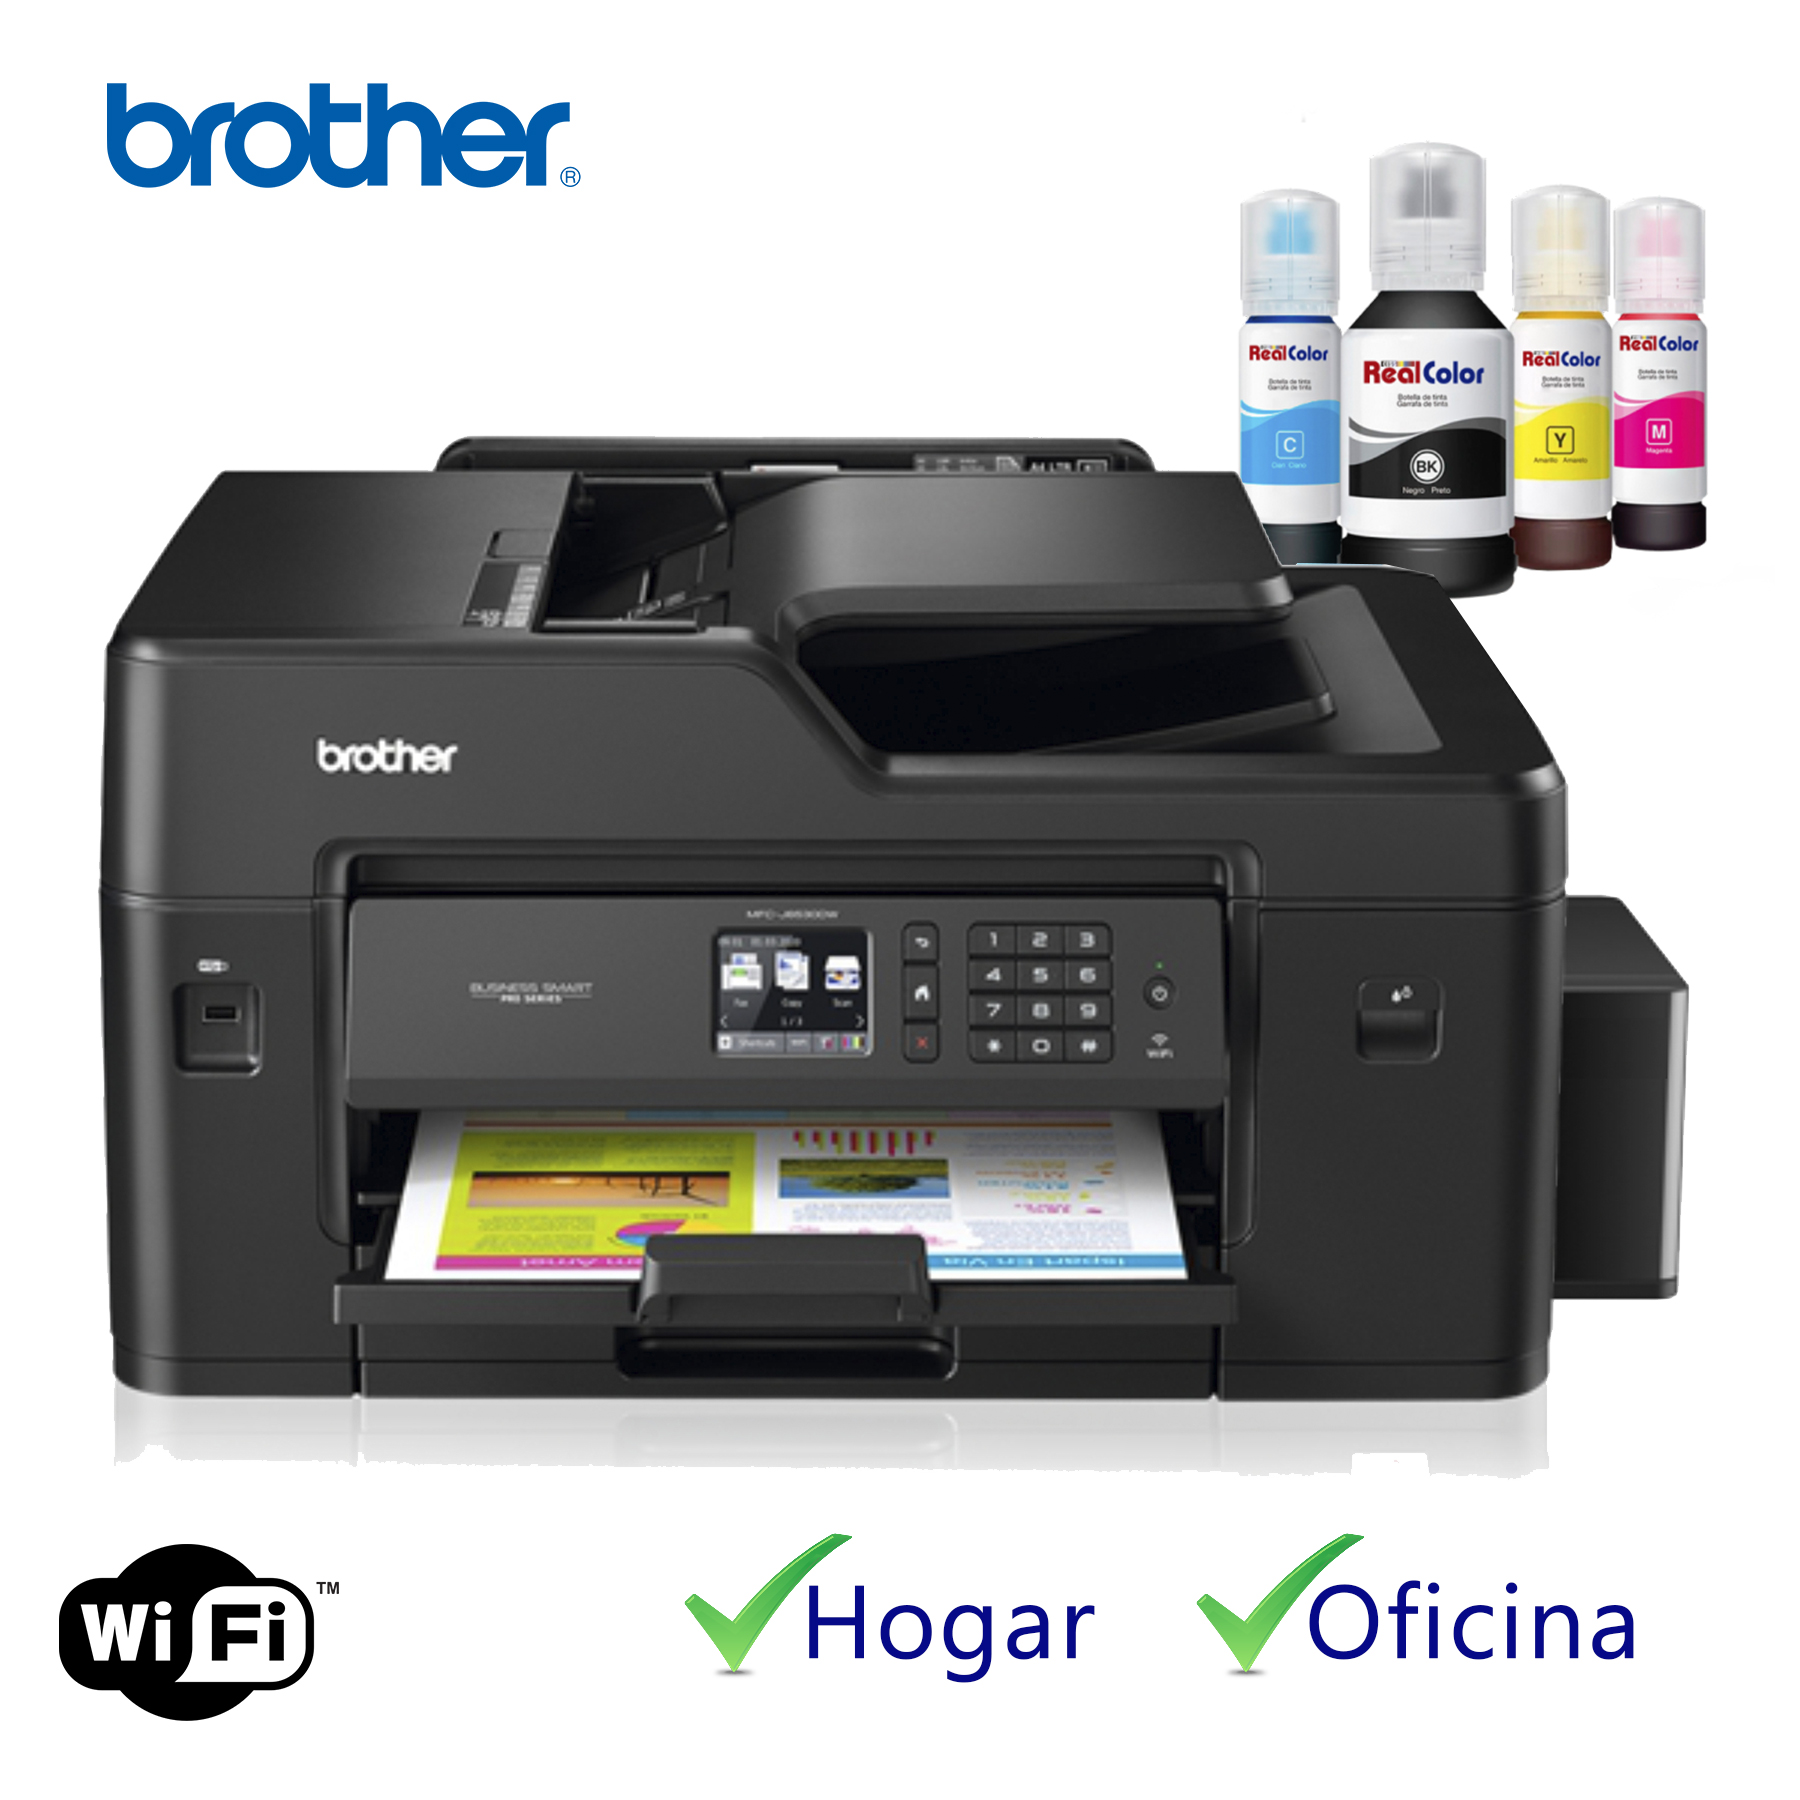 PRINTER BROTHER MFC-J5620DW  + SISTEMA TINTA